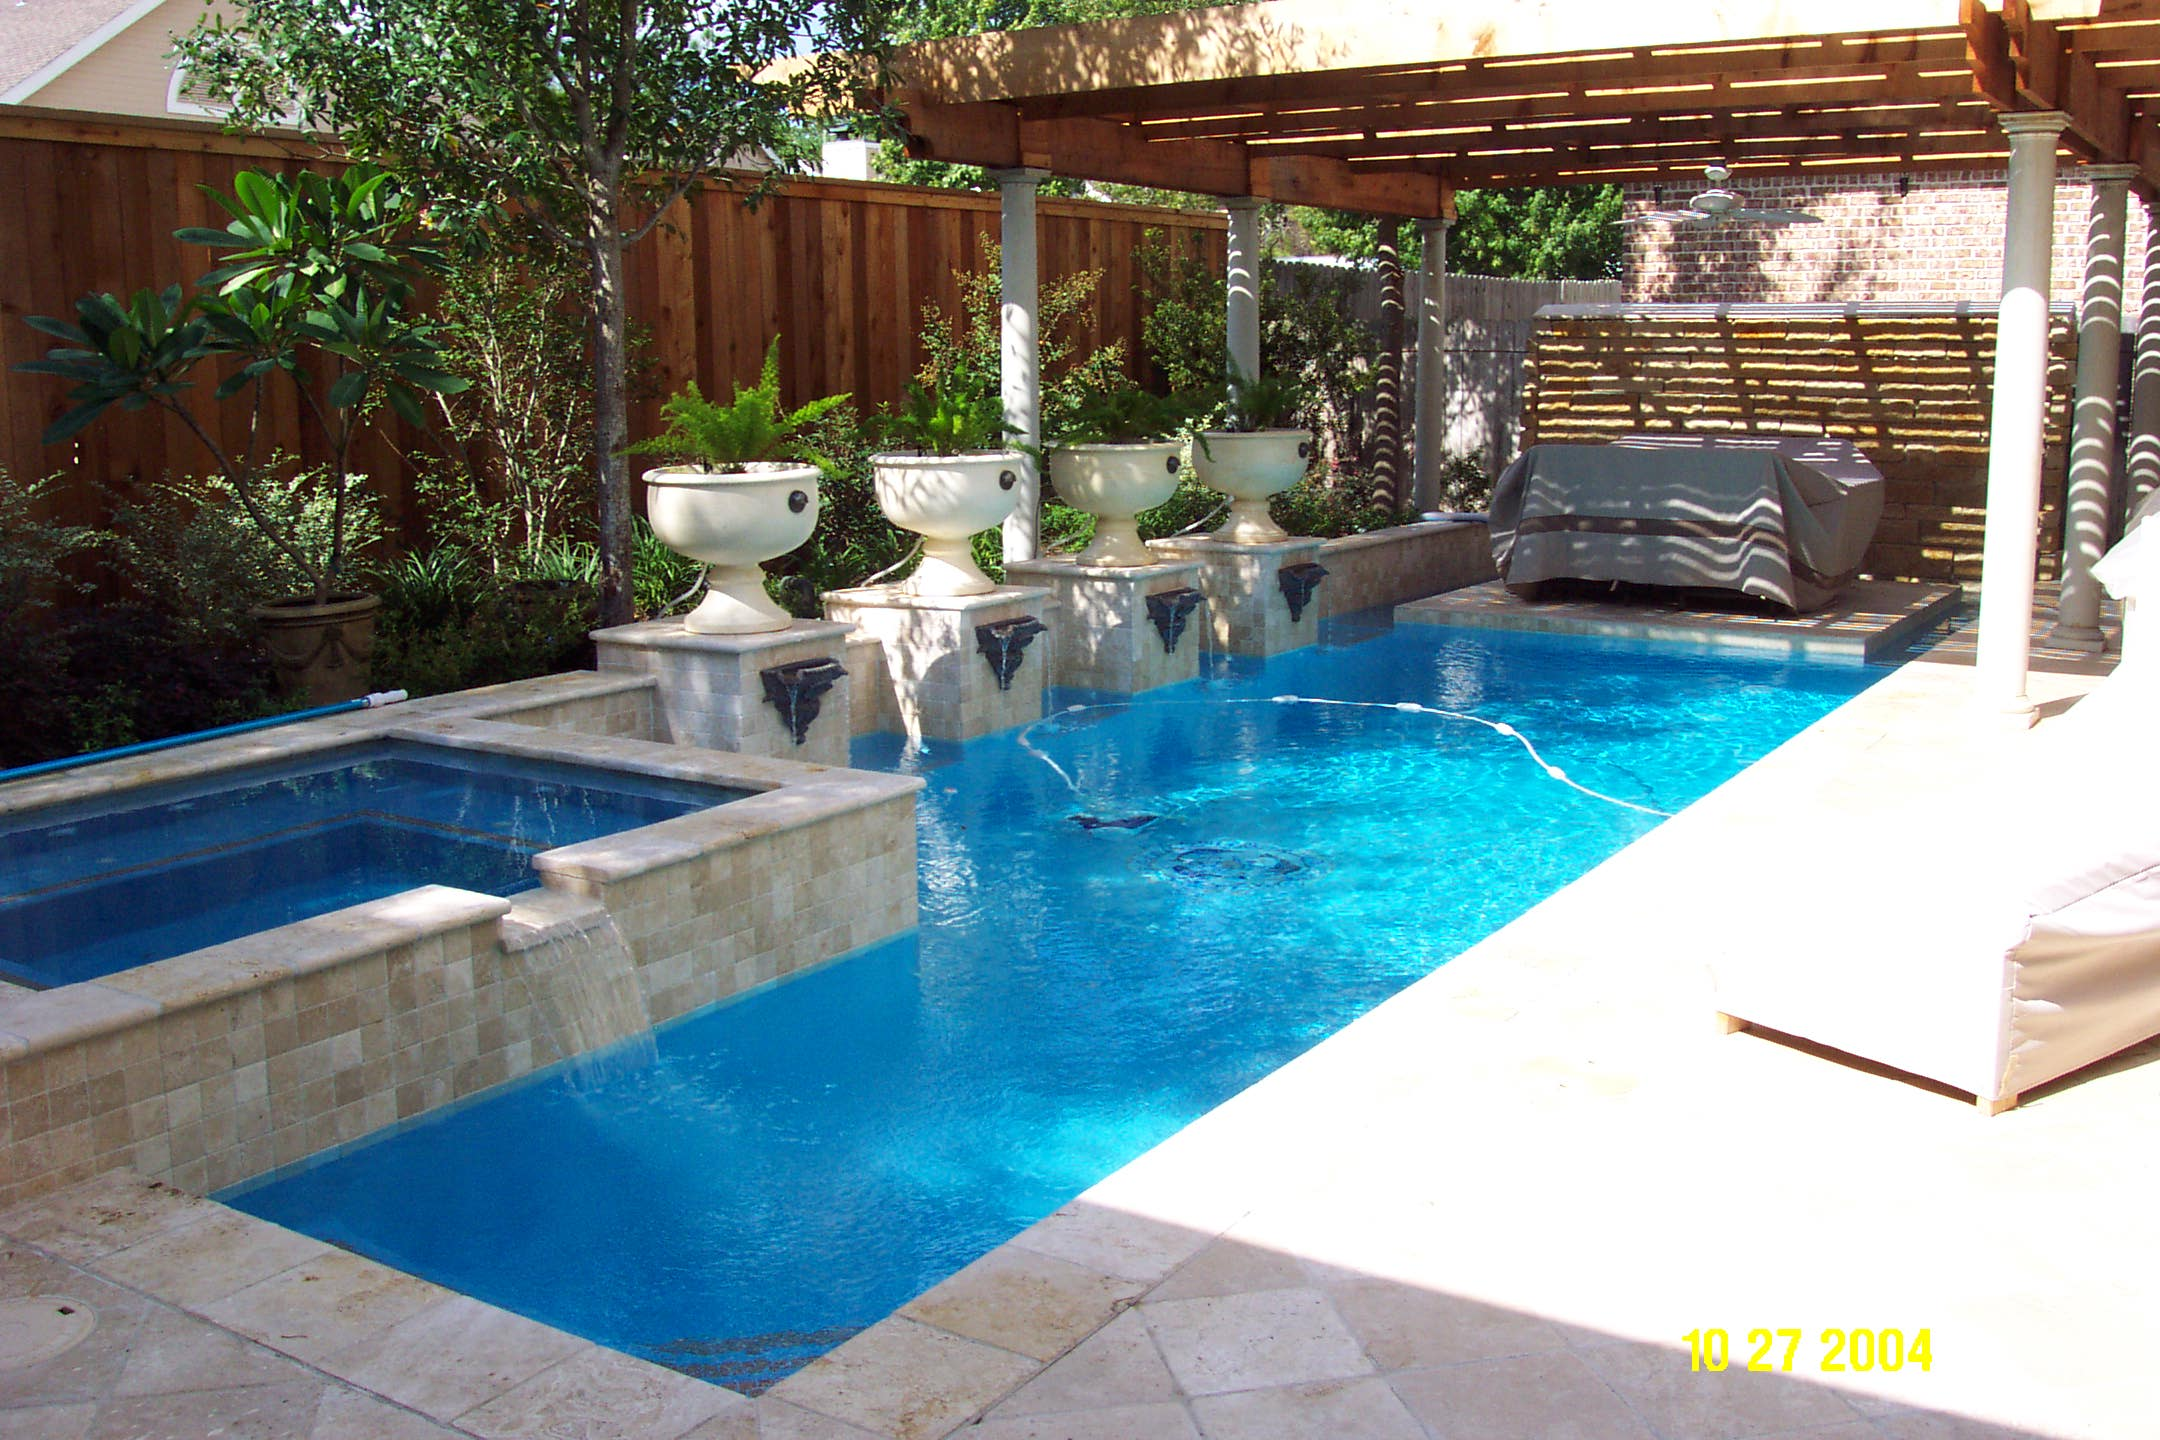 Small Yards With Swimming Pools Low Budget Interior Design